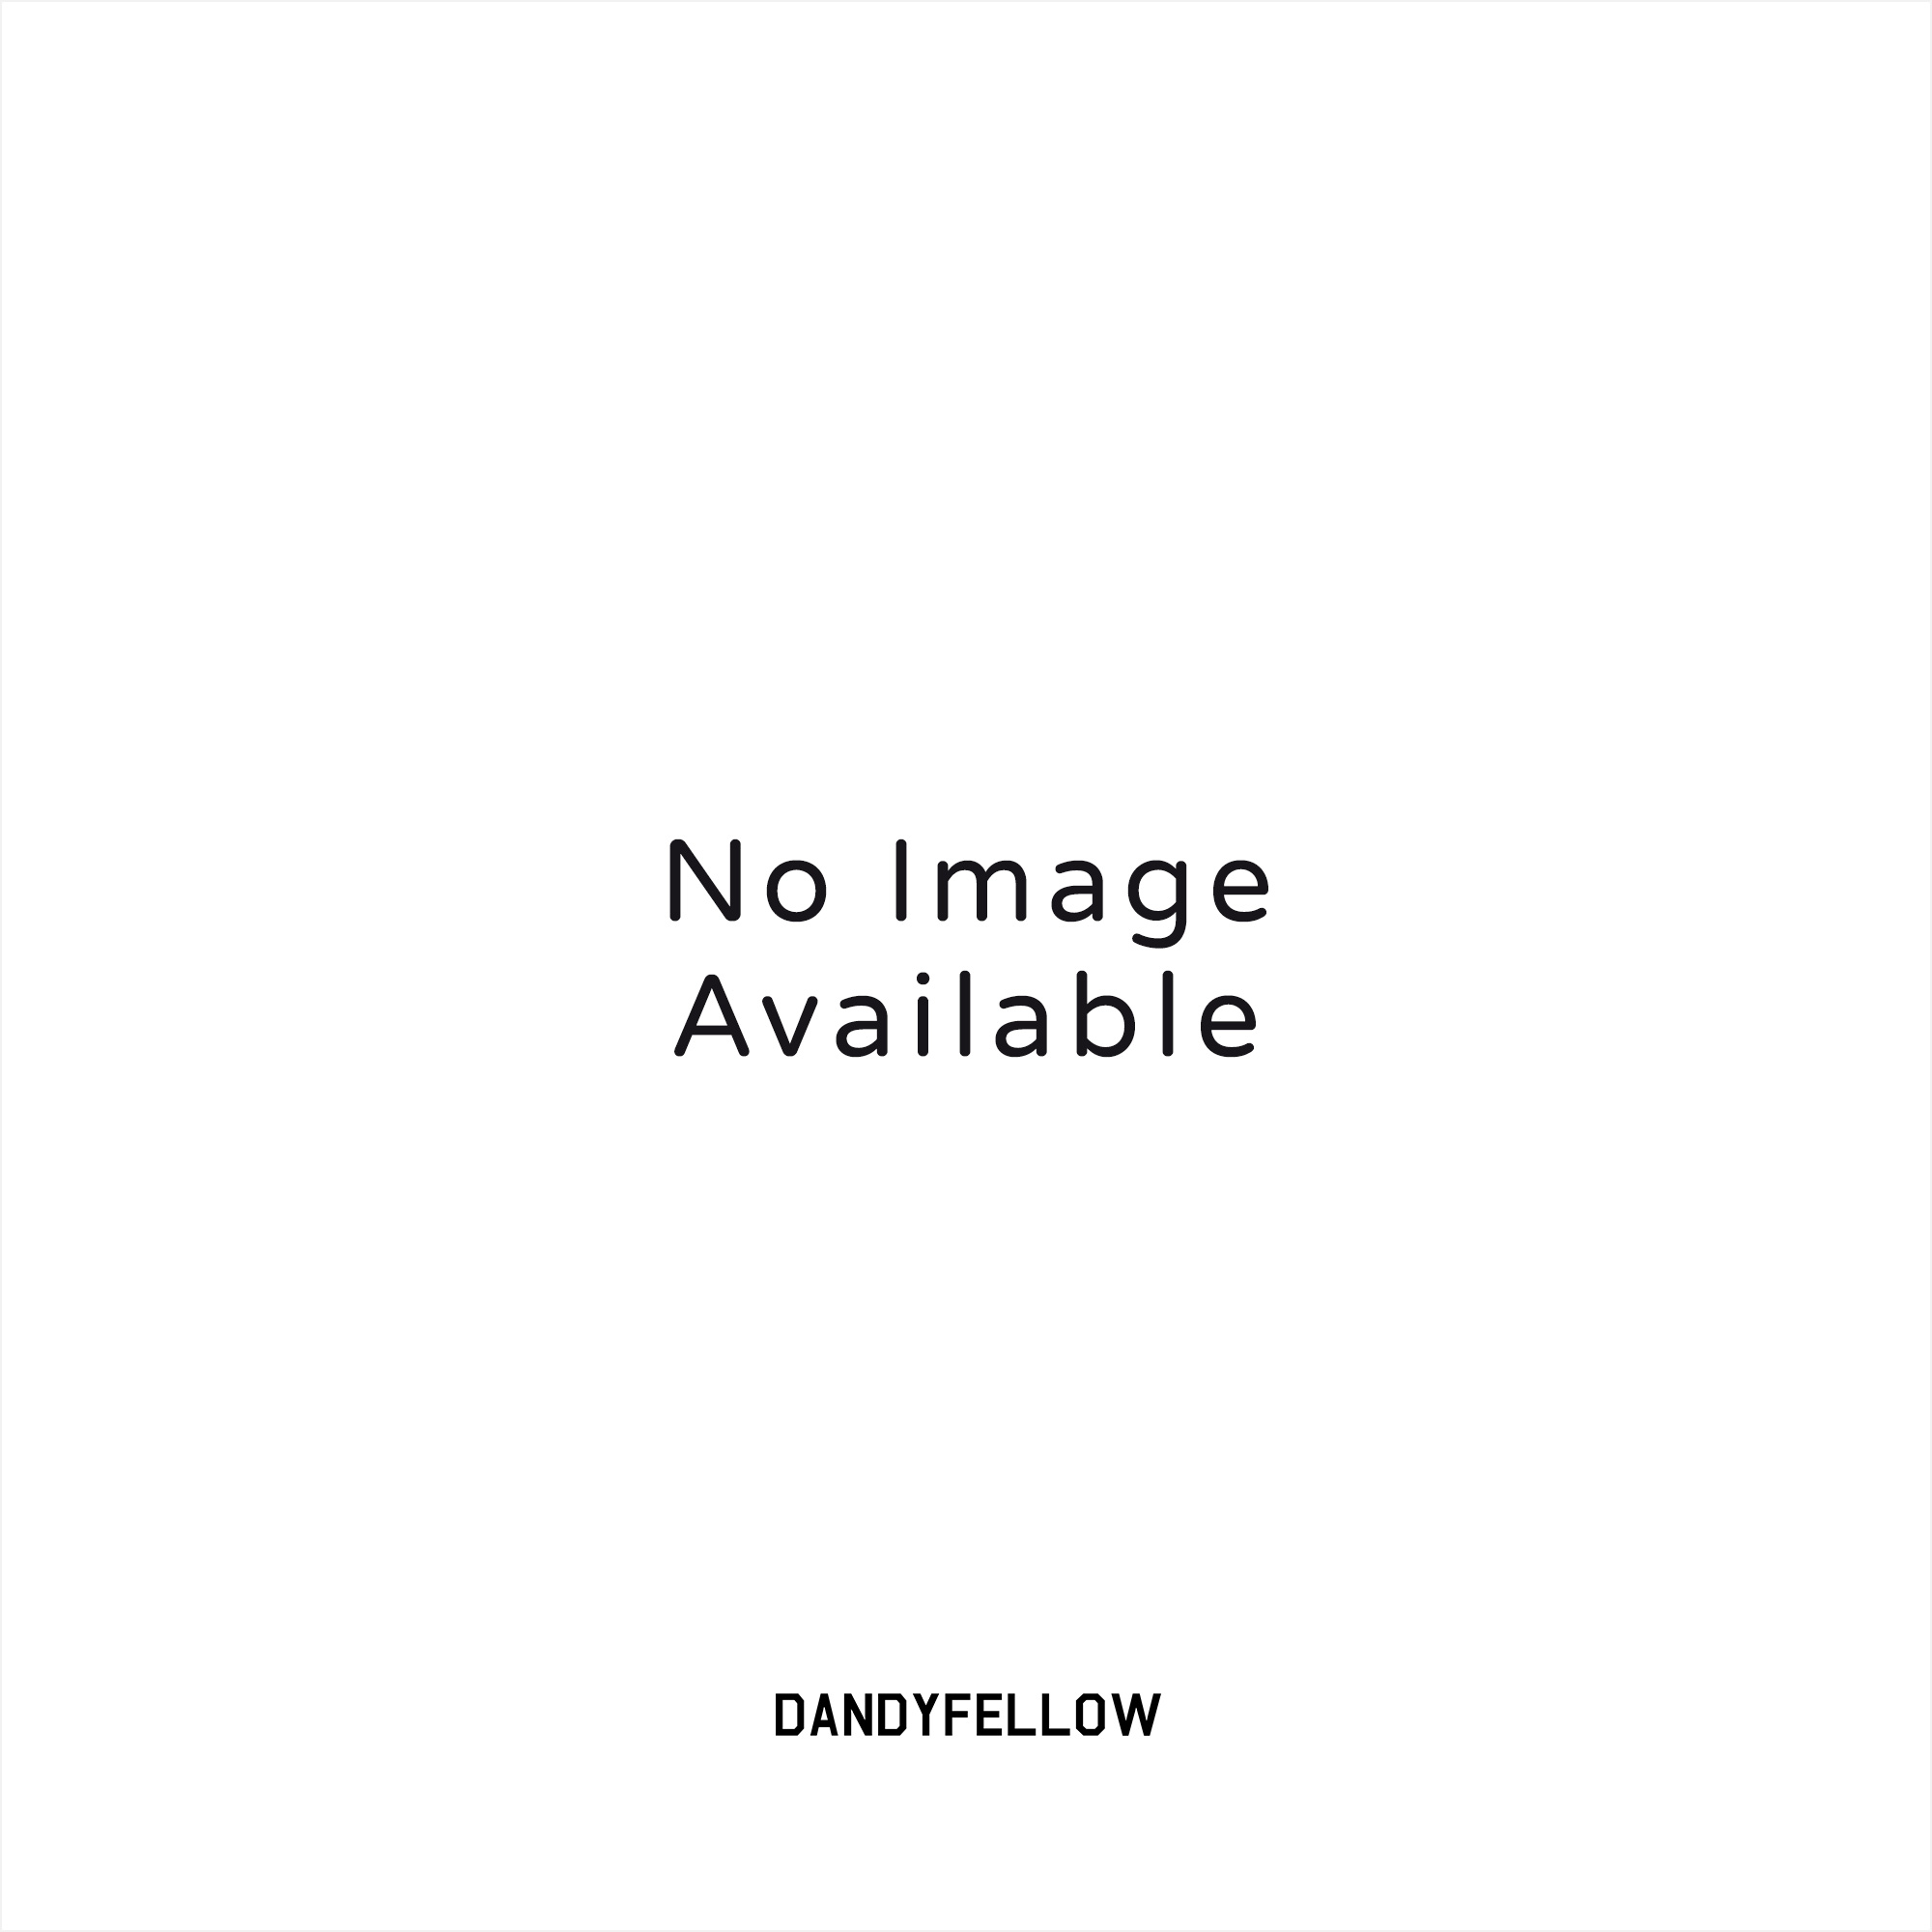 7e3ae0daf7868 levis-buckthorn-brown-mighty-made-striped-t-shirt-p31081-111800 image.jpg